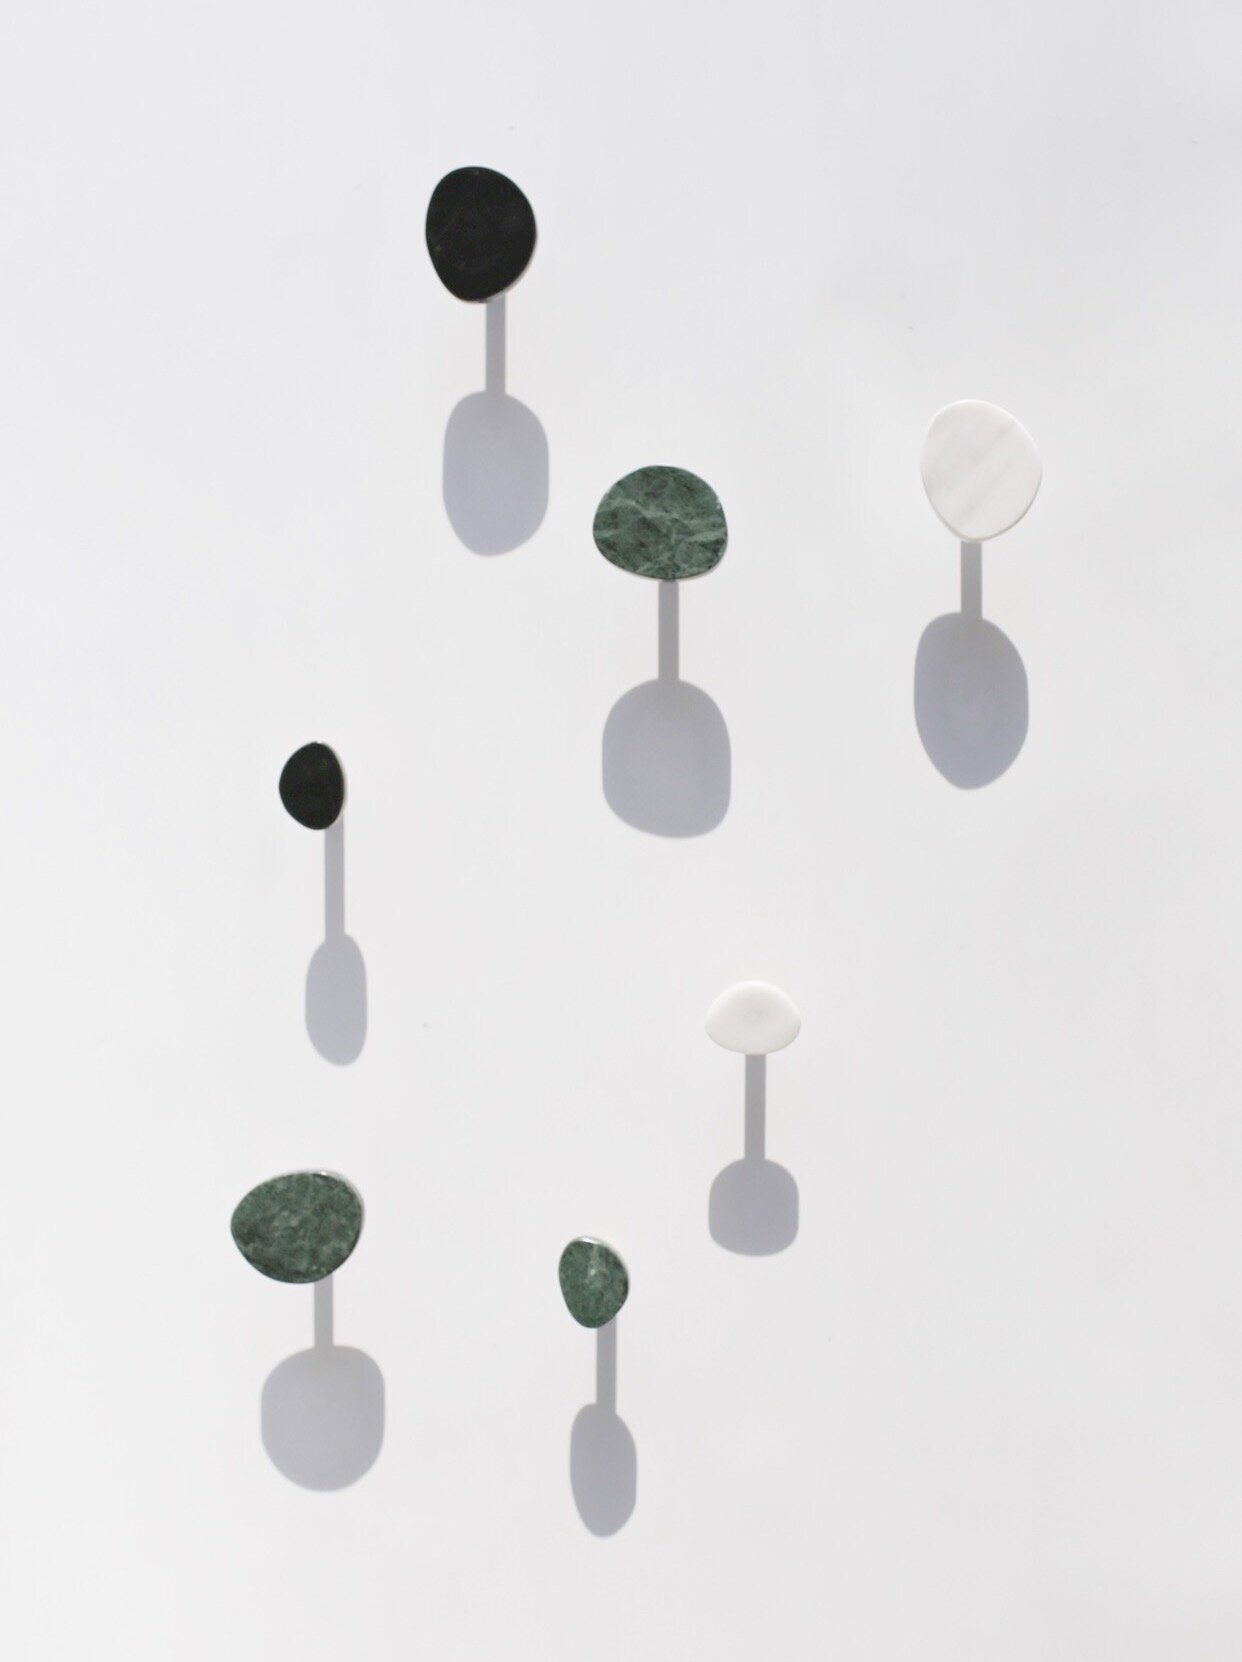 KAIT   Wall mounted marble with brass hardware hook  -   PRICE   Rp. 300.000/each  Rp. 575.000/set (small and large size)